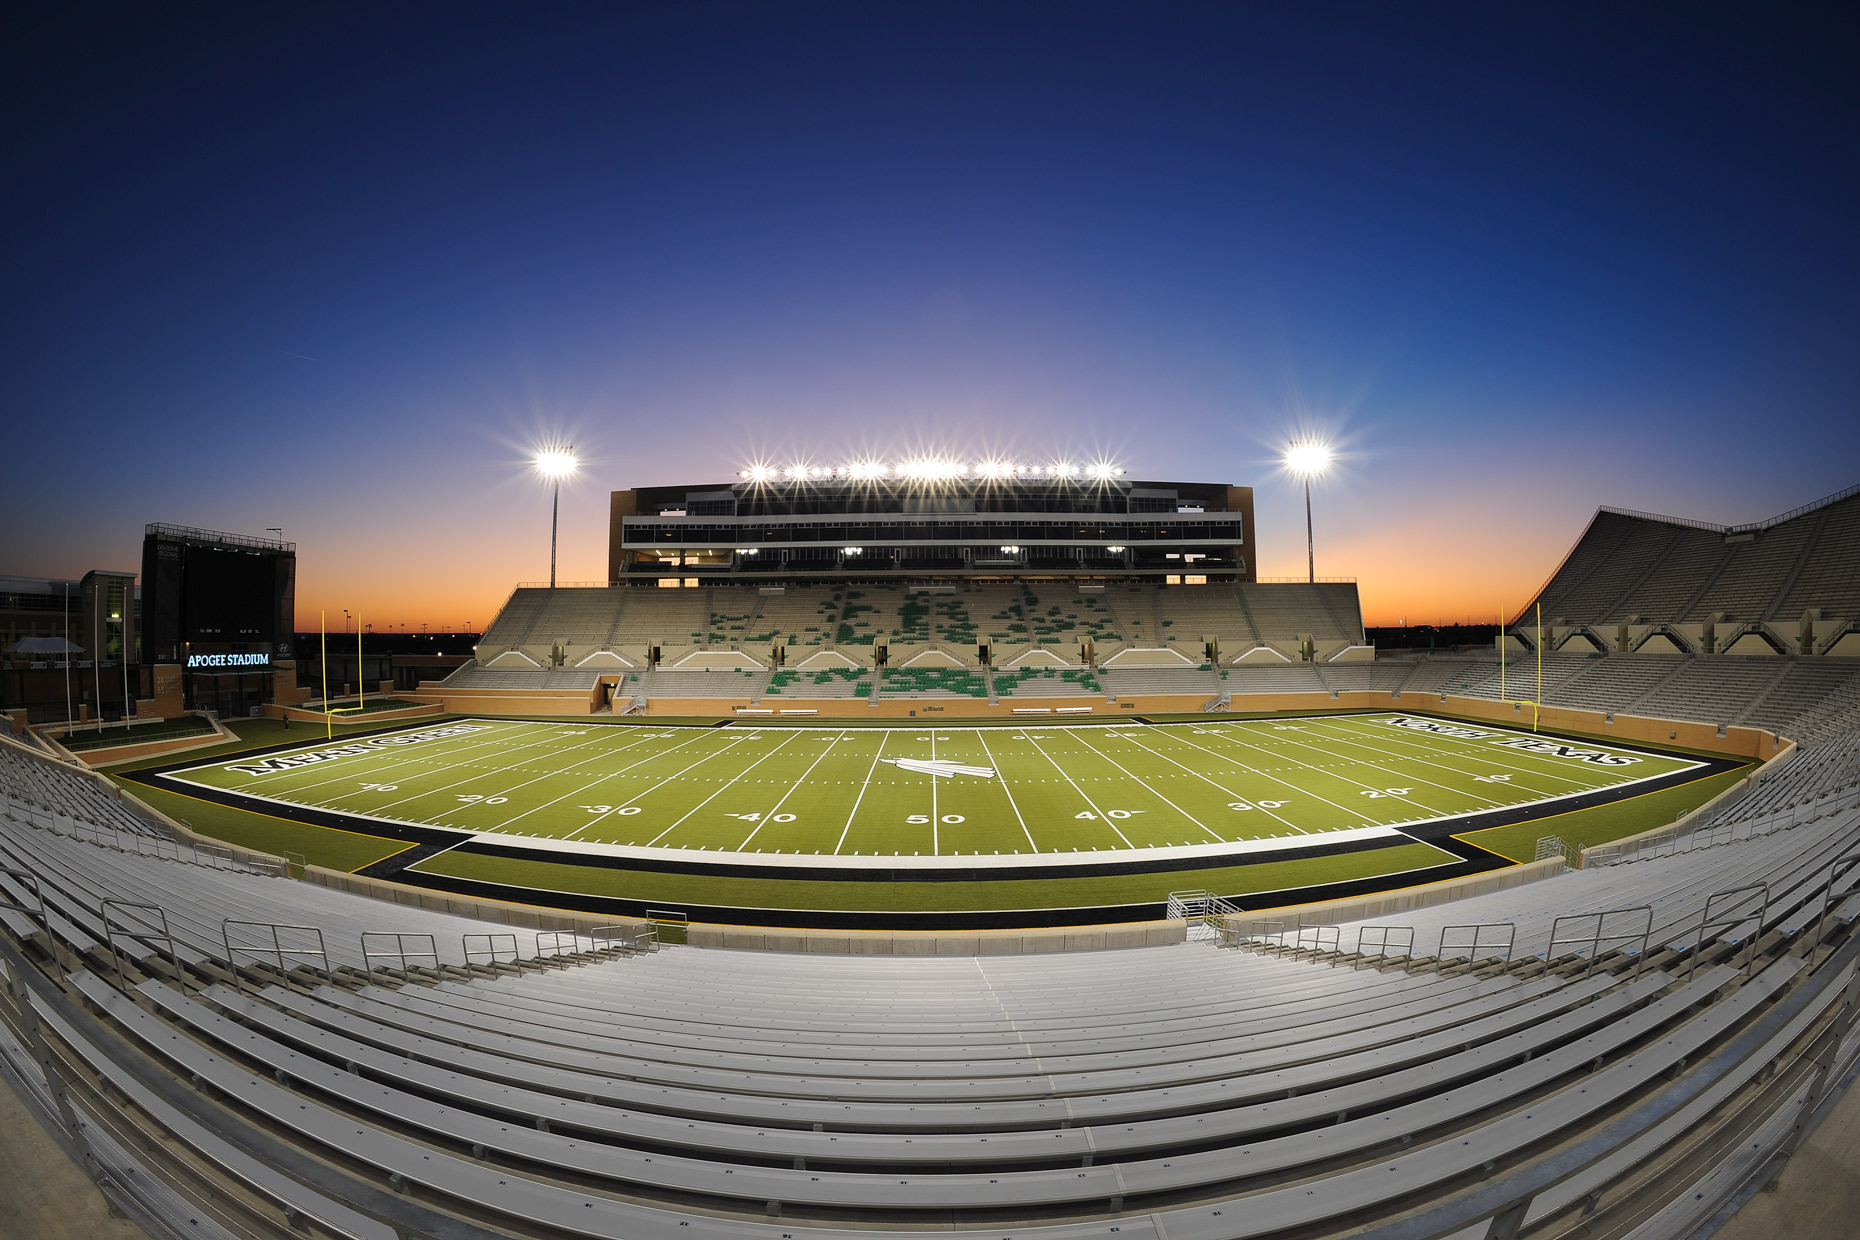 University of North Texas football stadium by Dallas architectural photographer Kevin Brown